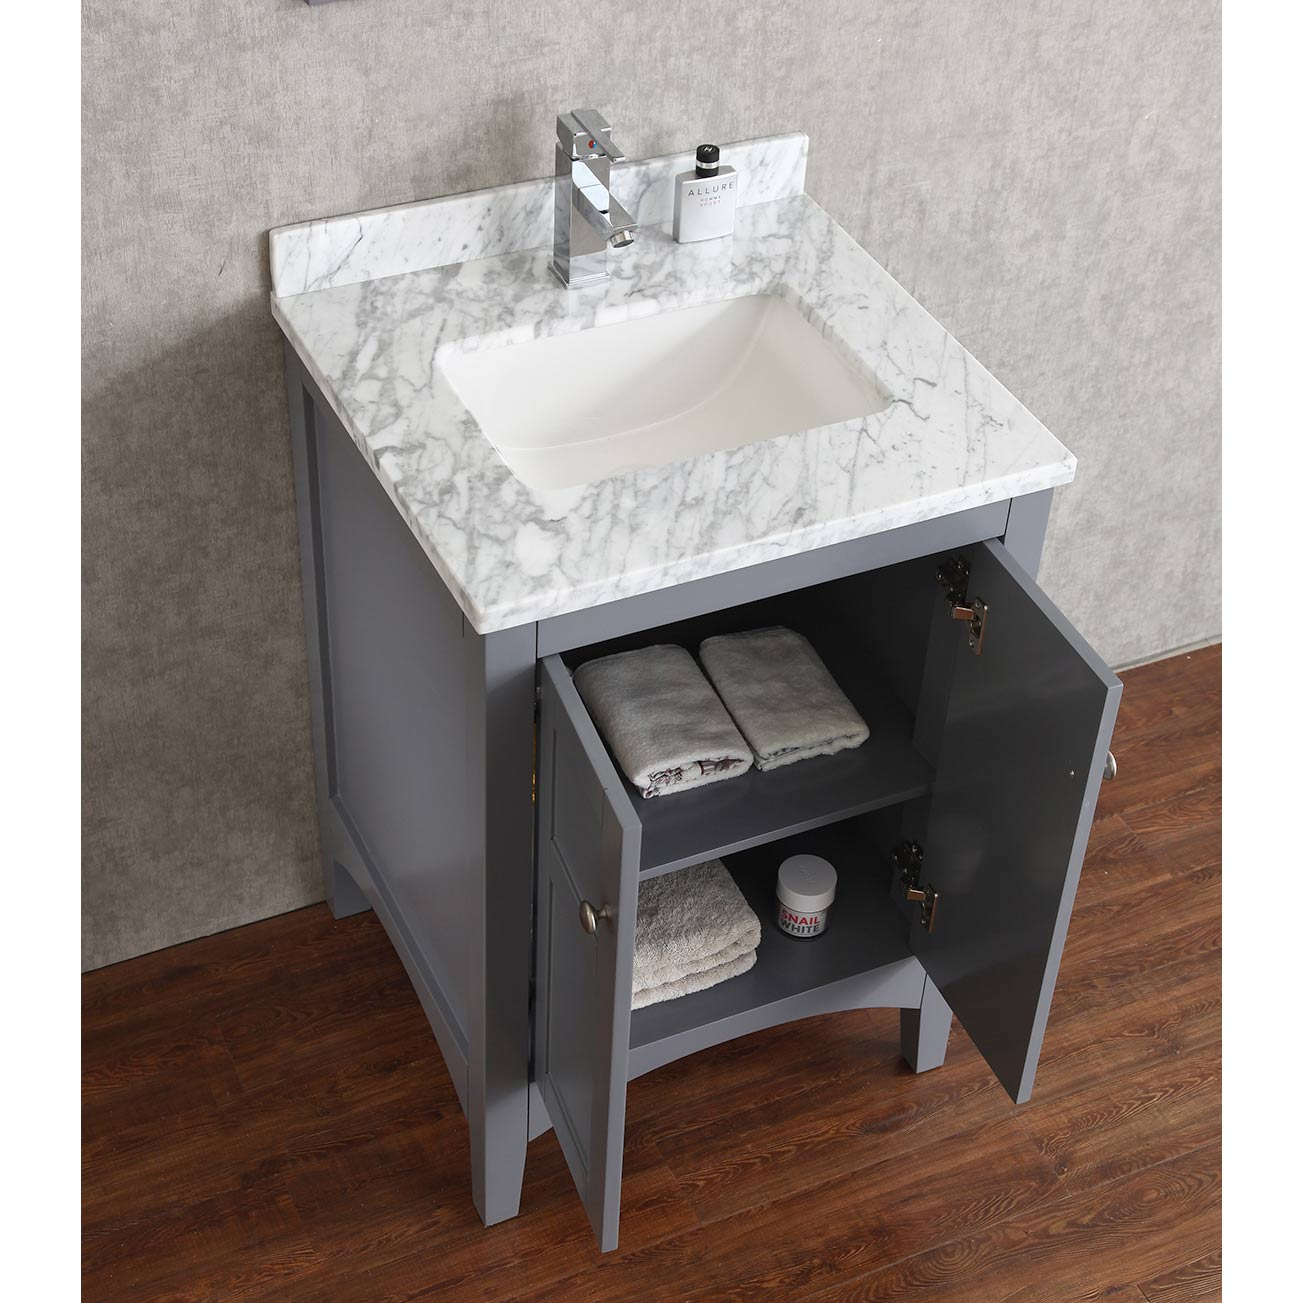 Buy martin 24 inch solid wood single bathroom vanity in charcoal grey hm 001 24 wmsq cg Solid wood bathroom vanities cabinets